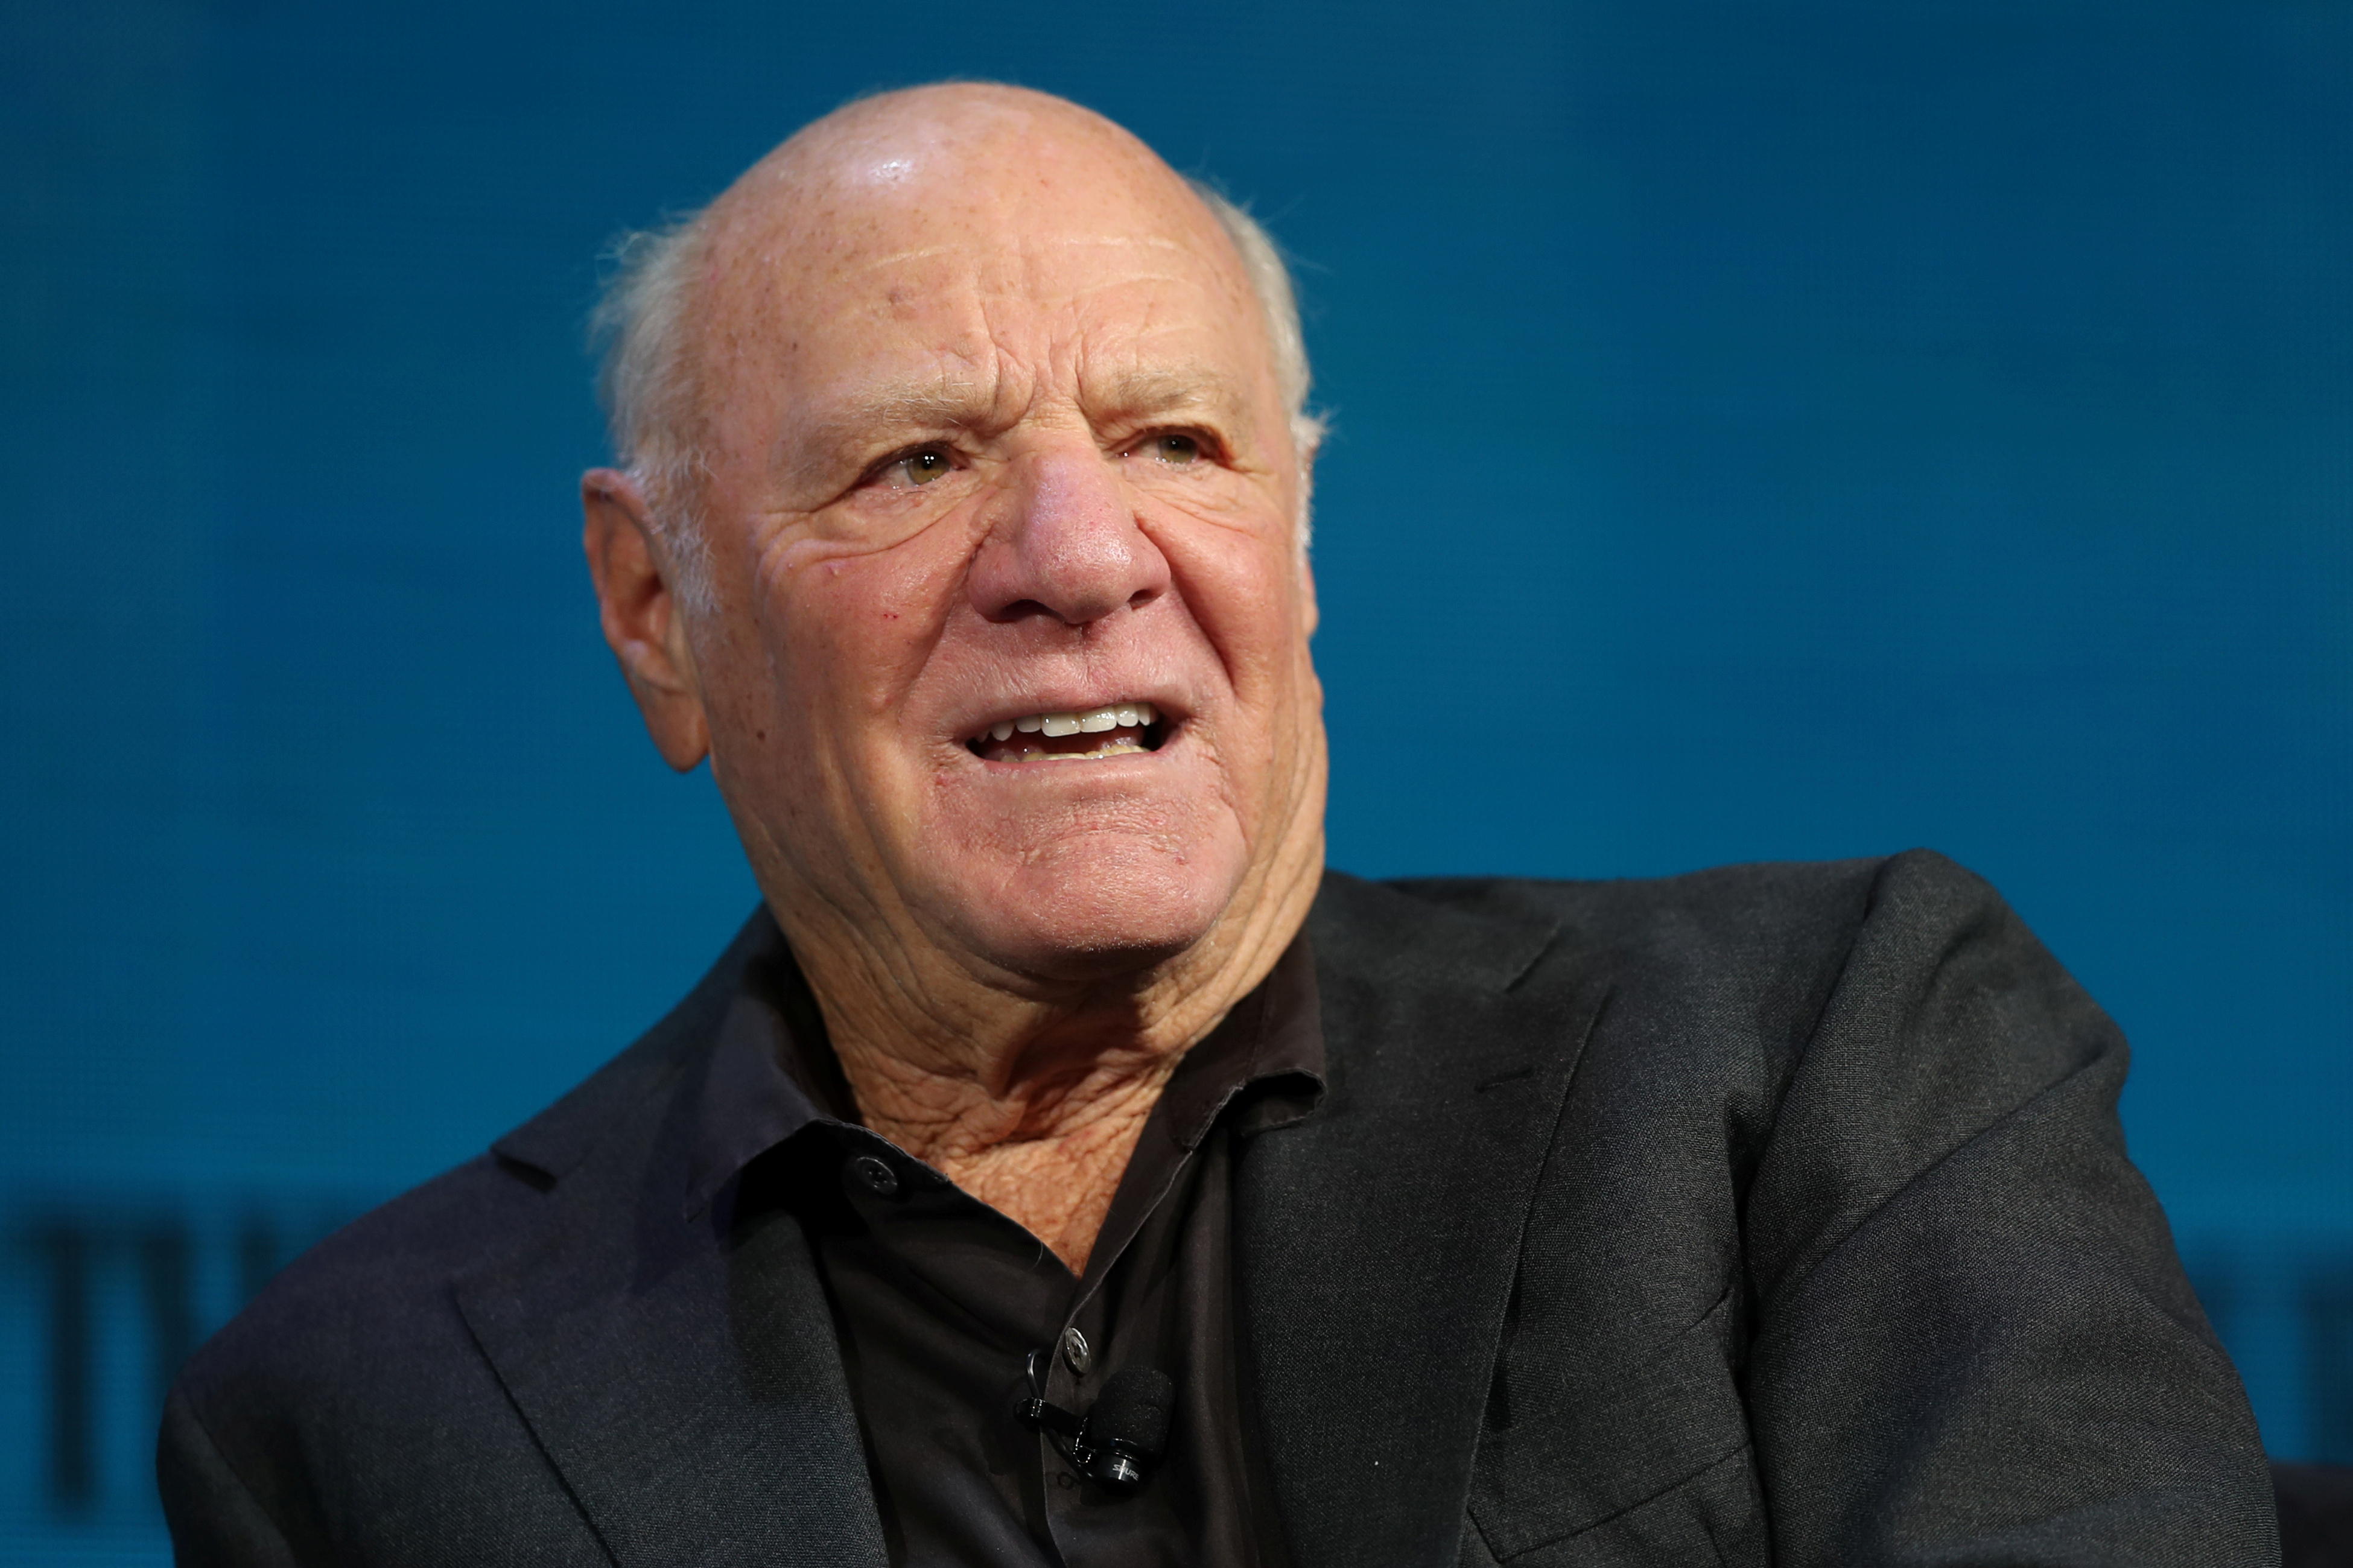 Barry Diller, Chairman and Senior Executive of IAC/InterActiveCorp and Expedia, Inc., speaks at the Wall Street Journal Digital conference in Laguna Beach, California, U.S., October 17, 2017. REUTERS/Mike Blake